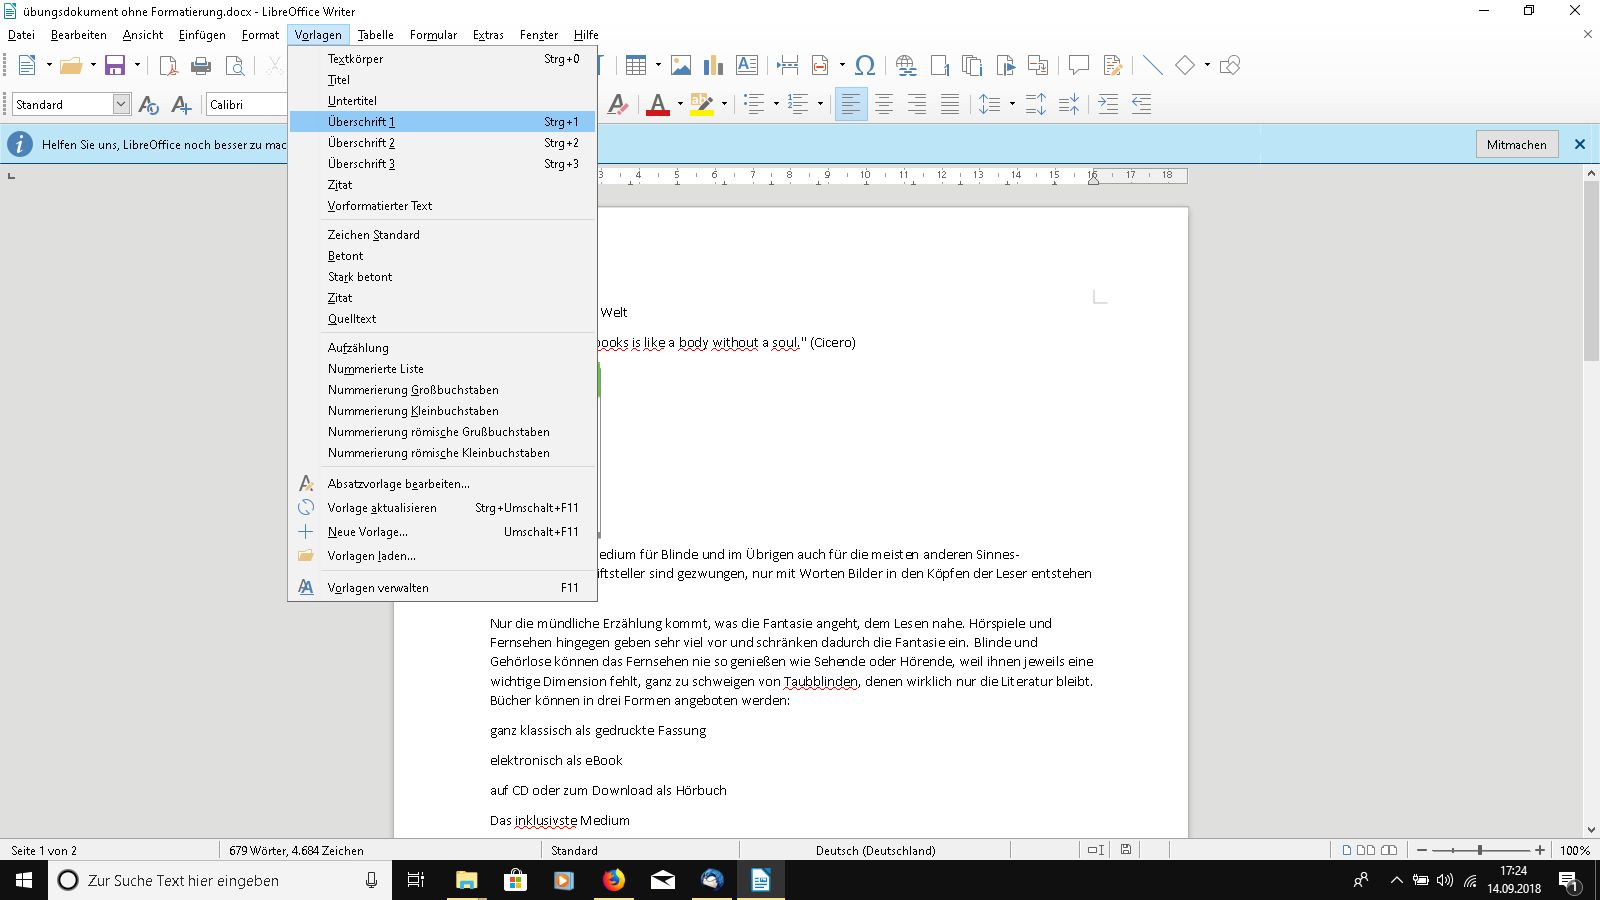 Formatvorlagen in LibreOffice